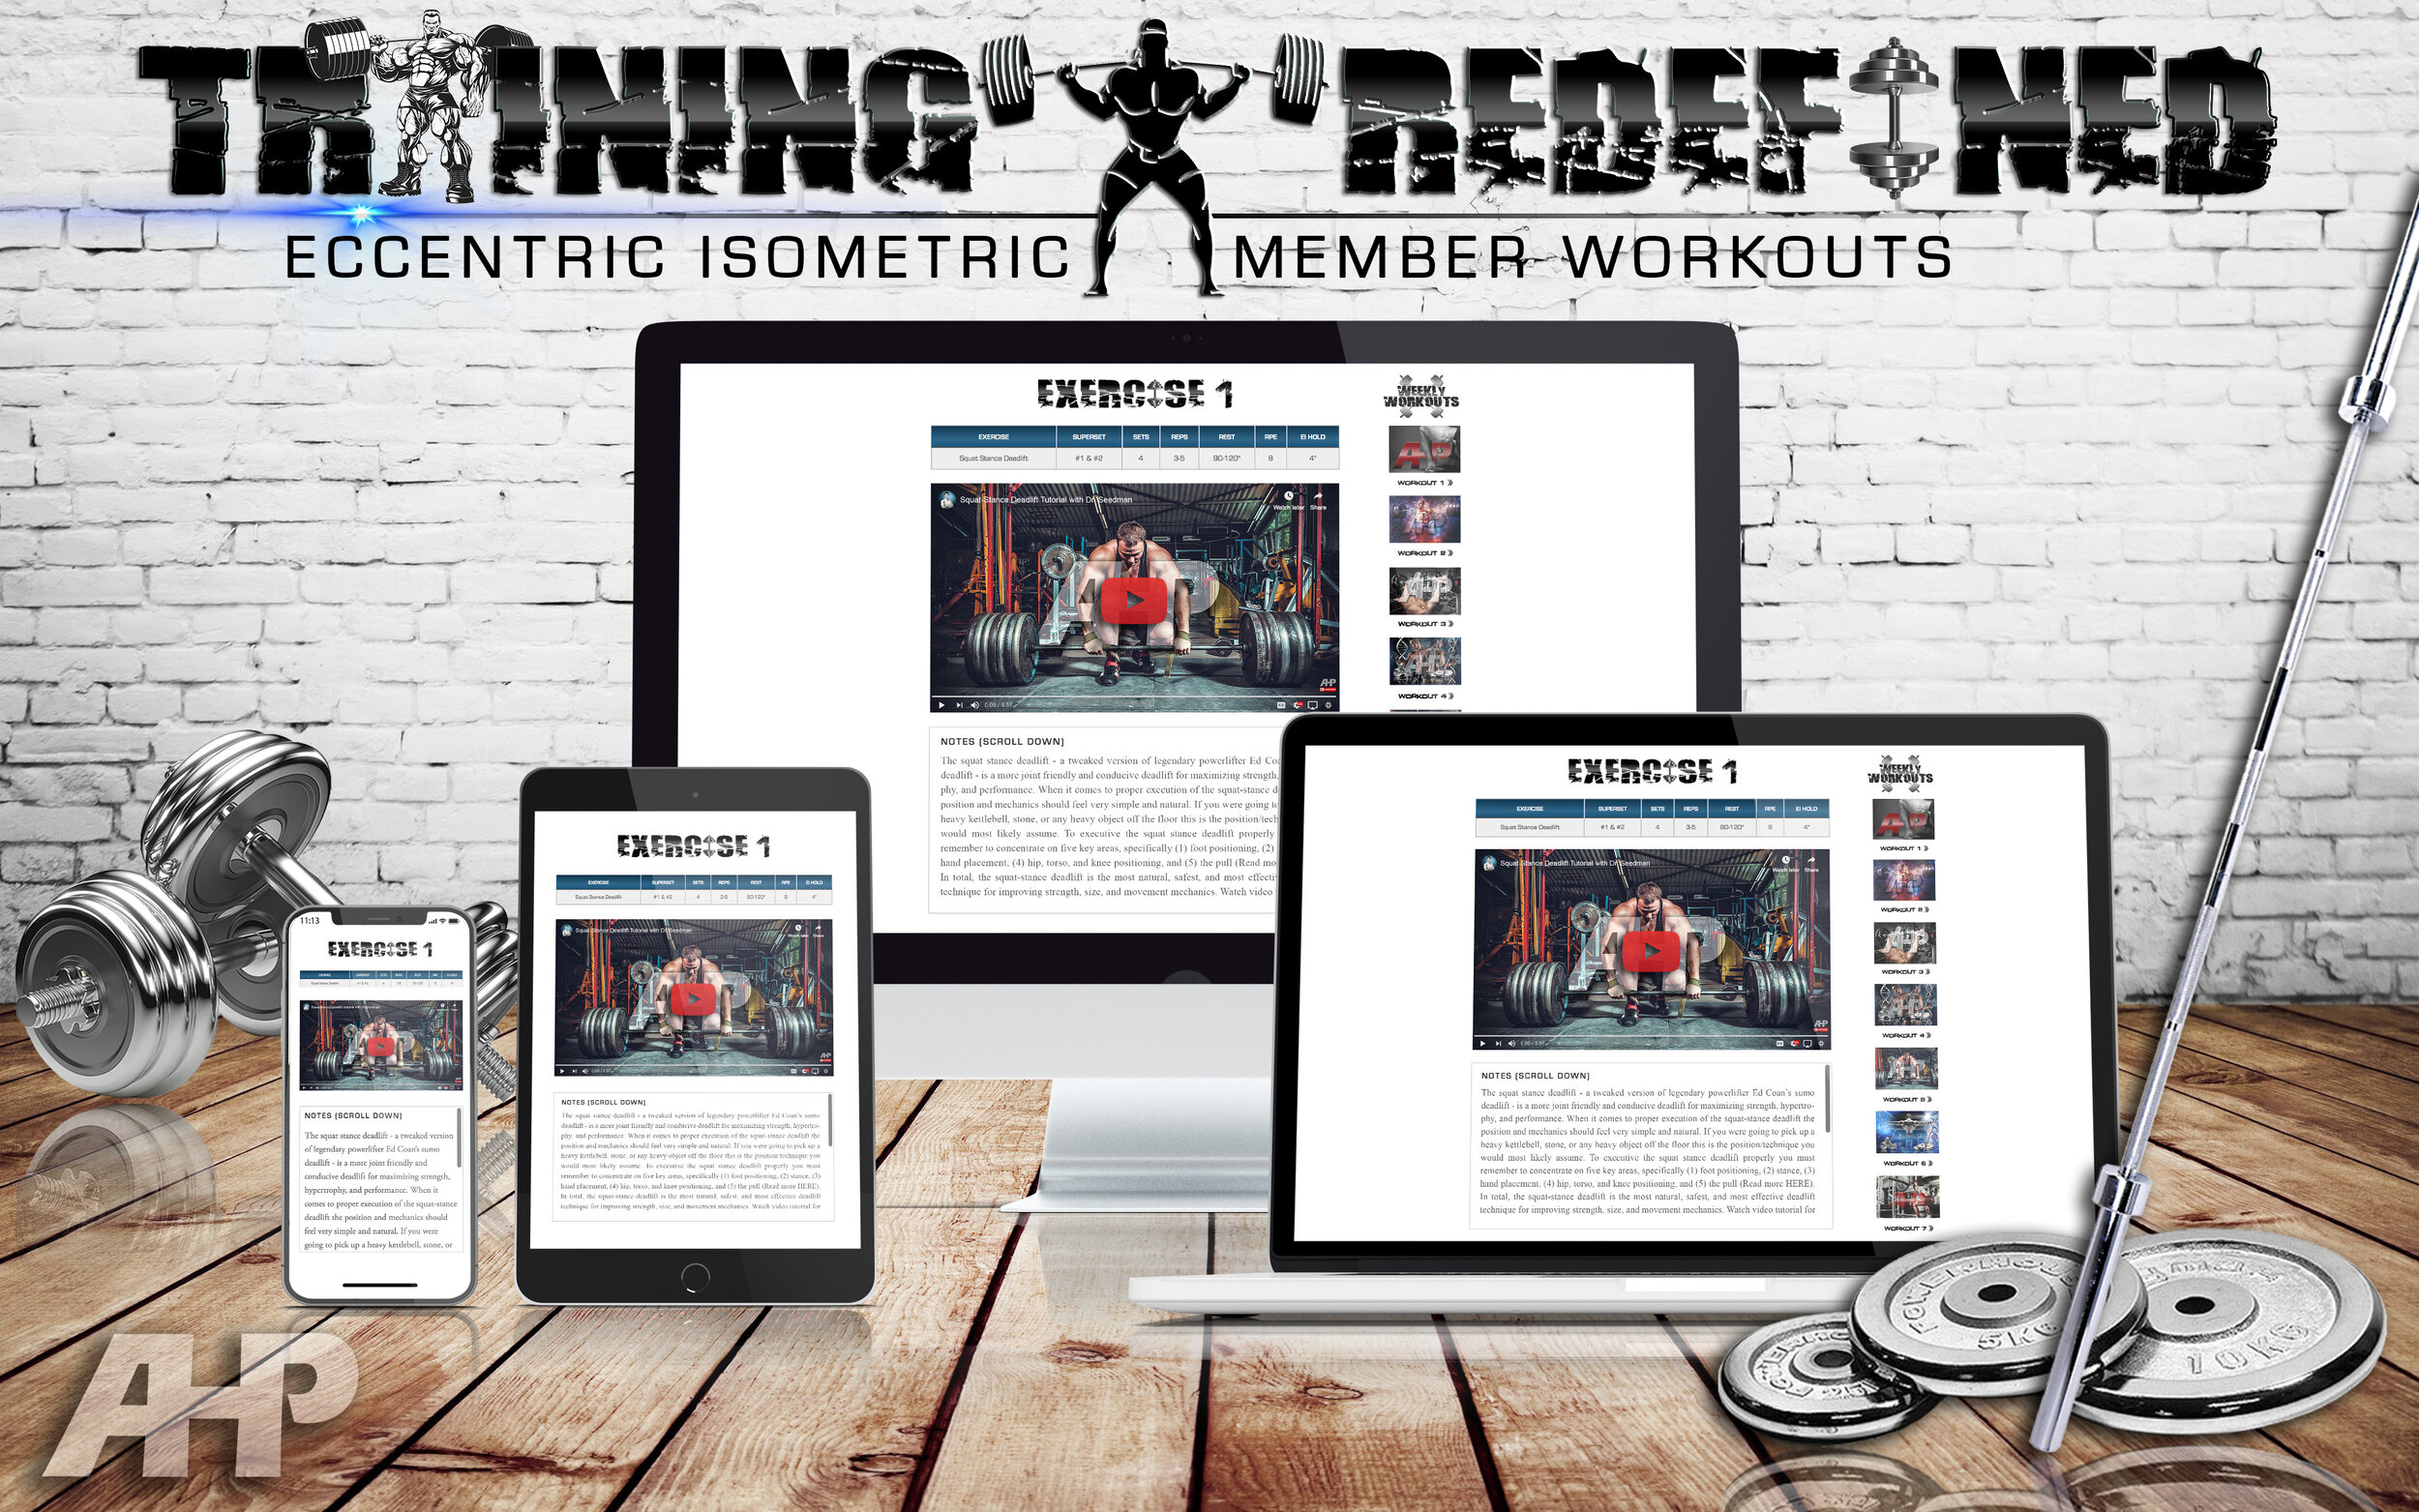 Take a Look Inside a Daily Workout + Click to Enlarge